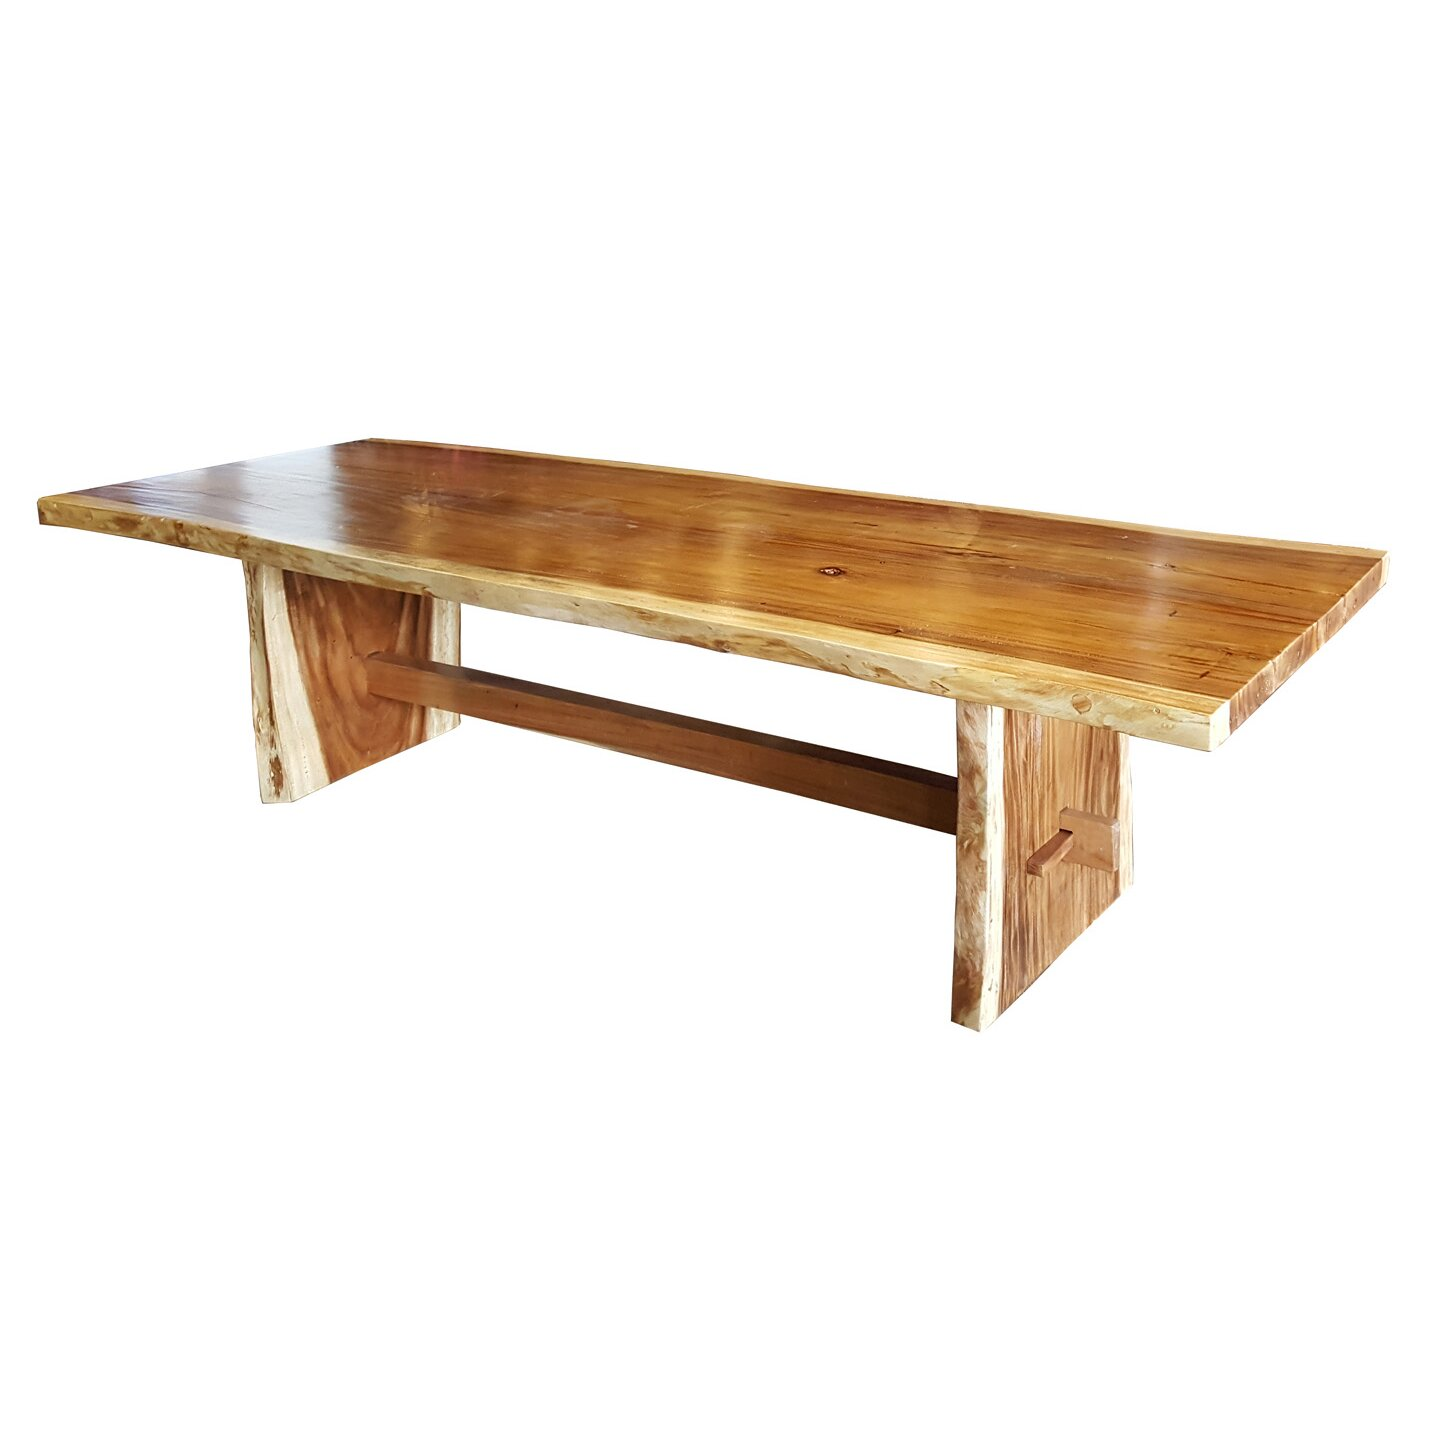 Chicteak suar dining table for Wayfair dining table